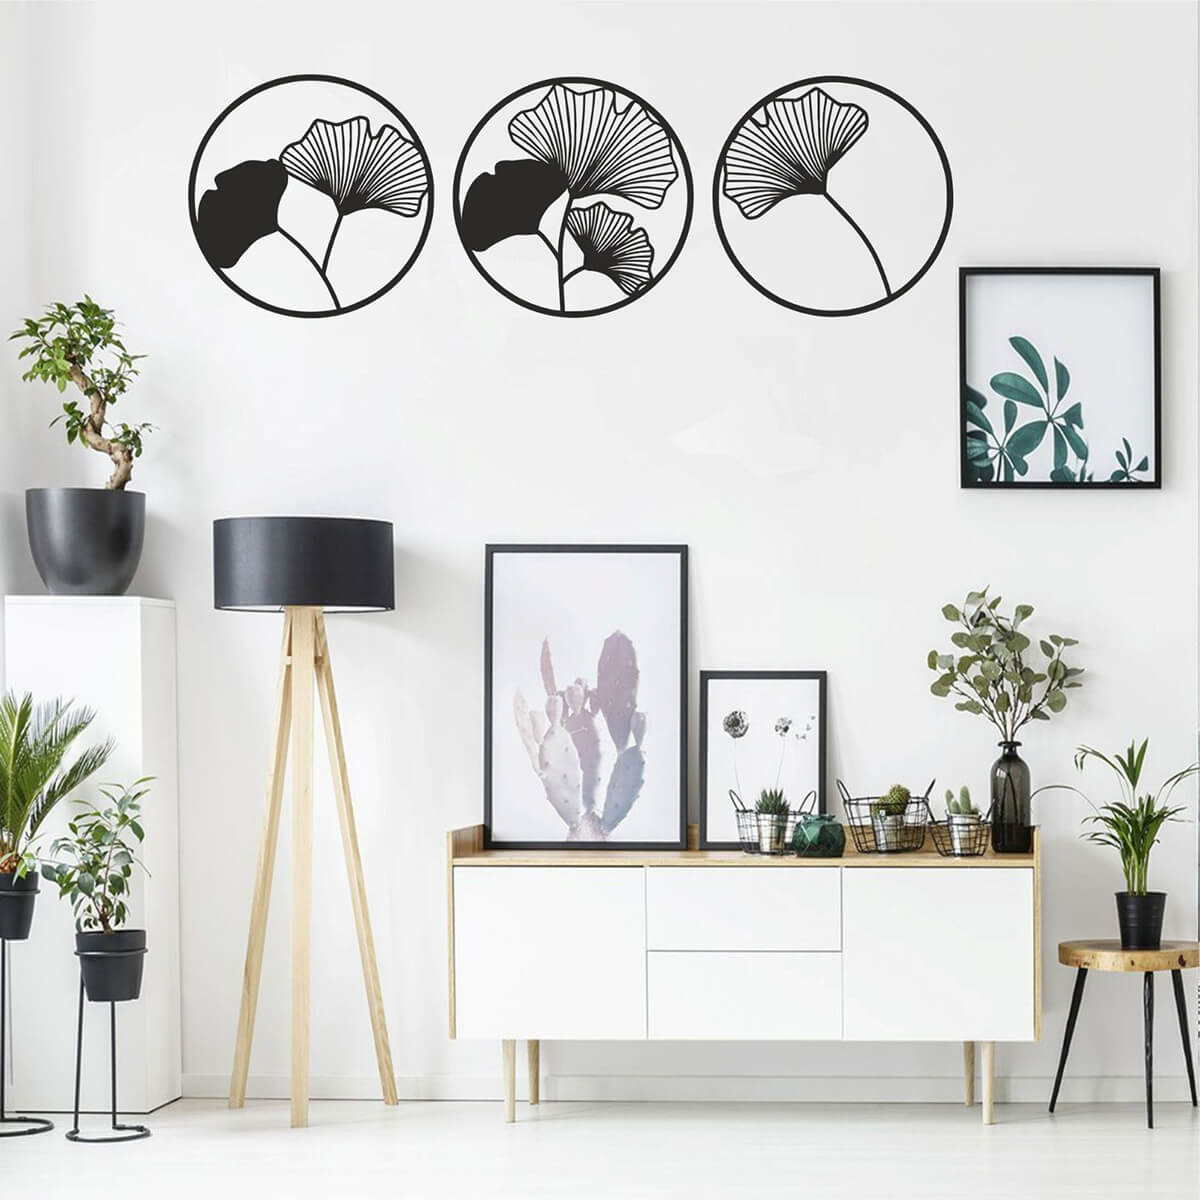 Black And White Decoration In A Concept and History